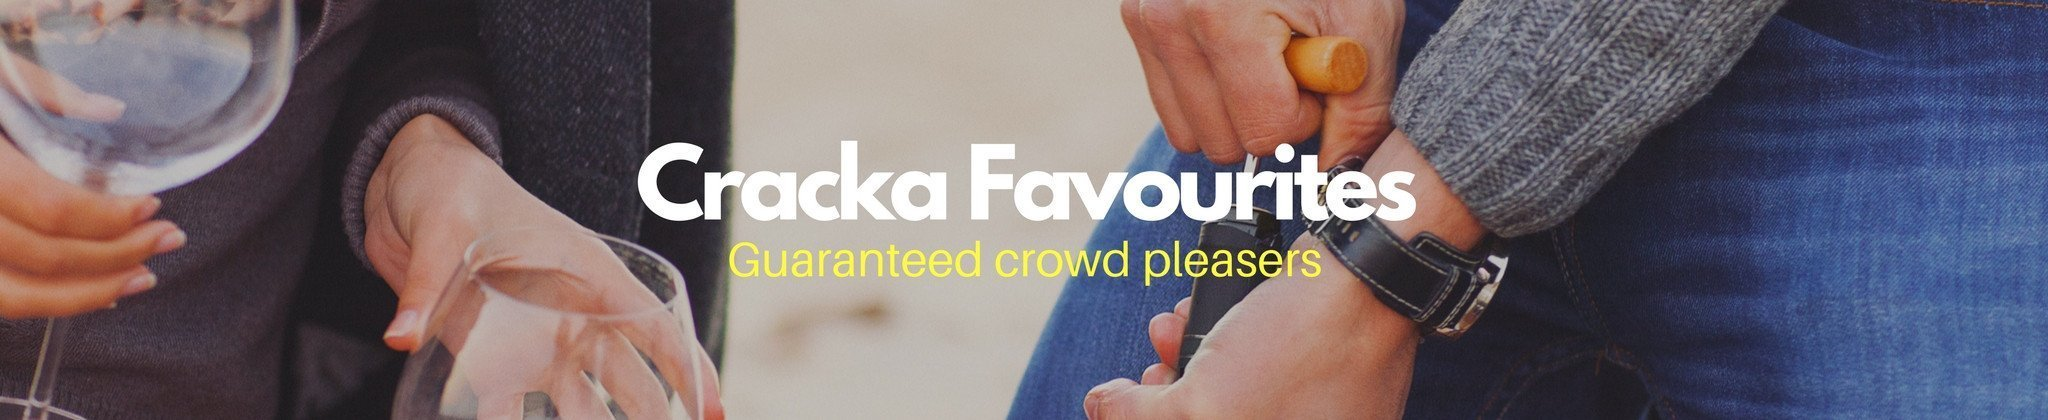 cracka-favourites-image